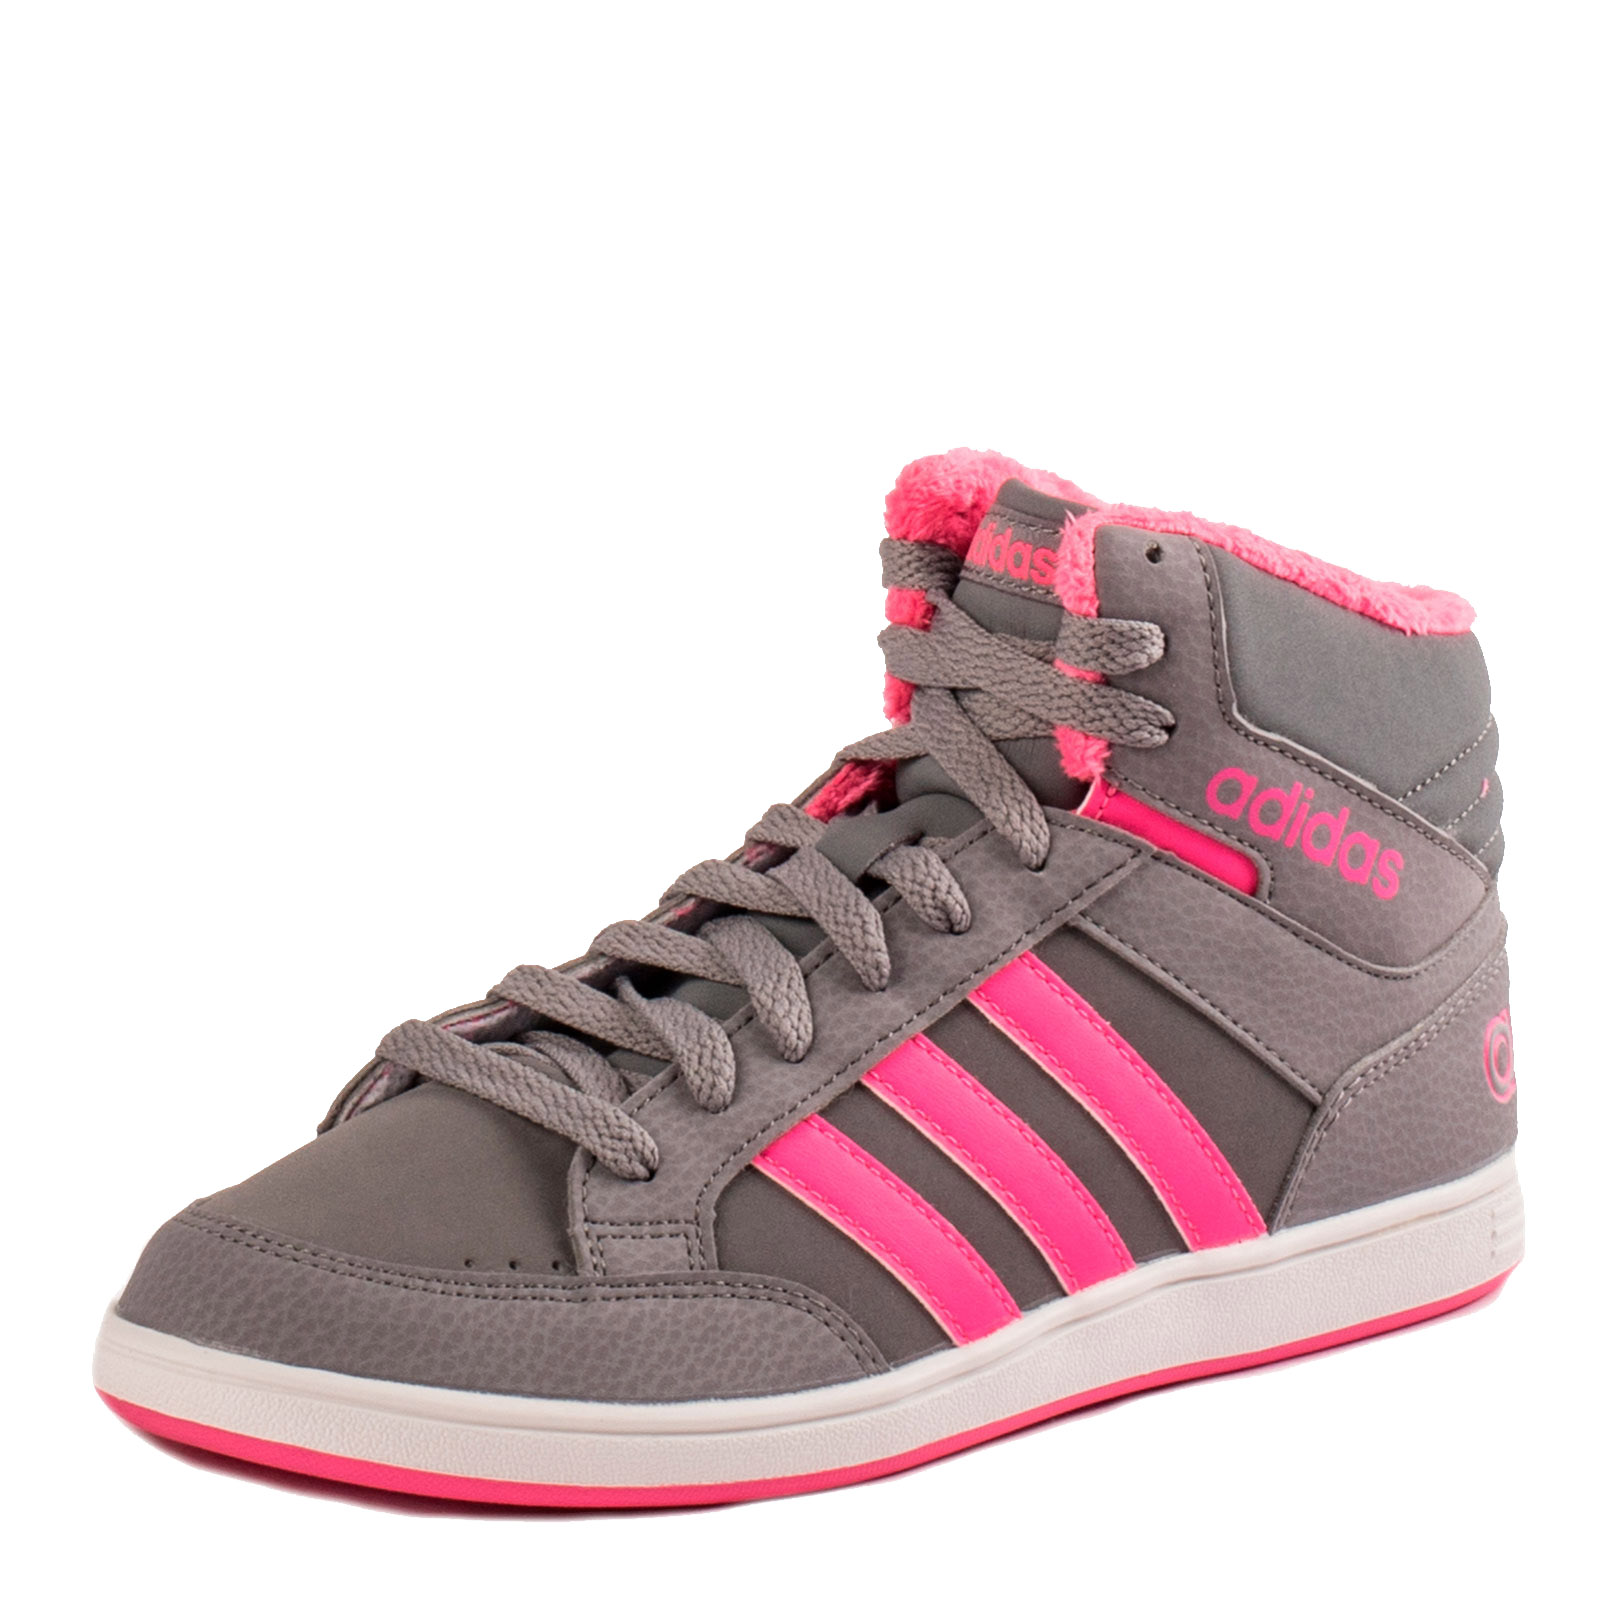 Female Sneakers Adidas AQ1576 sports and entertainment for girls oudiniao sports and leisure shoes